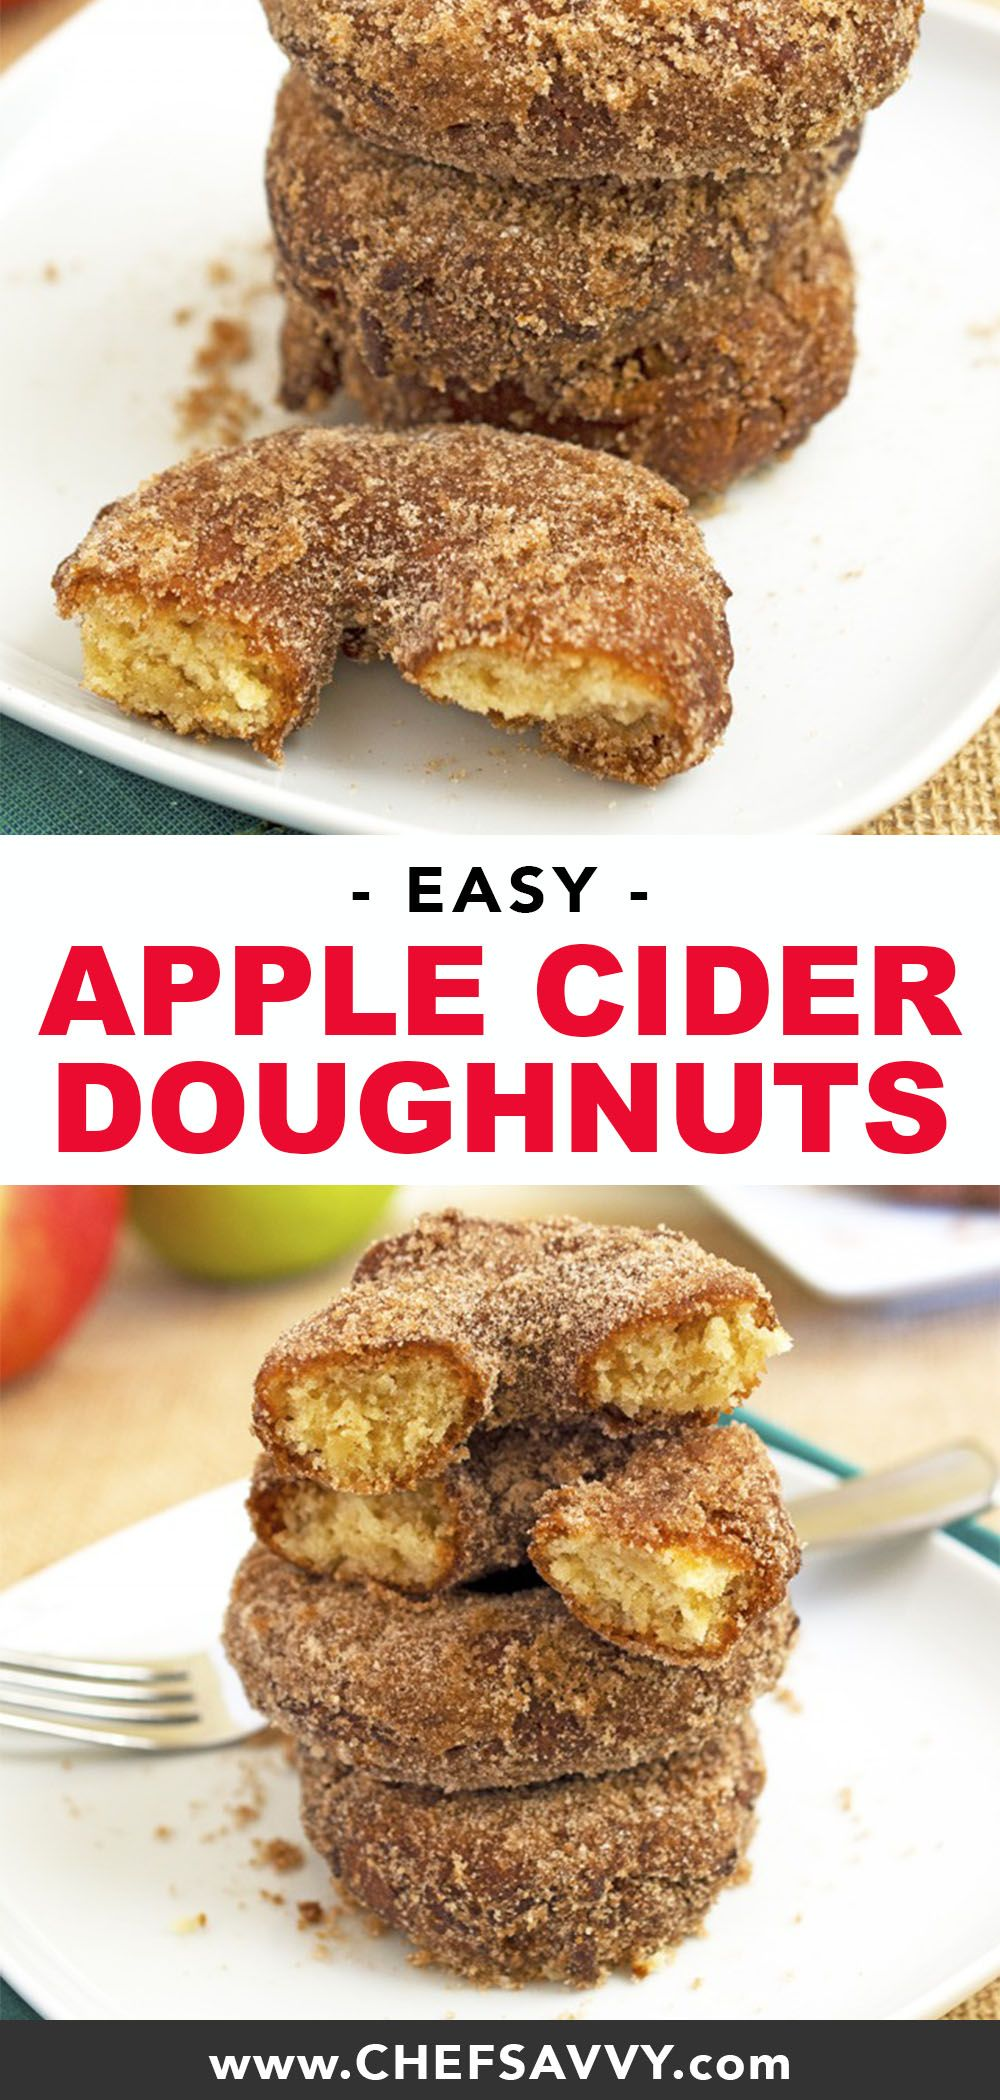 Apple Cider Doughnuts The BEST Apple Cider Doughnuts - perfect breakfast or dessert for fall! These melt in your mouth donuts are made with fresh apple cider and your favorite fall spices. The whole family will love this on a Saturday morning! |